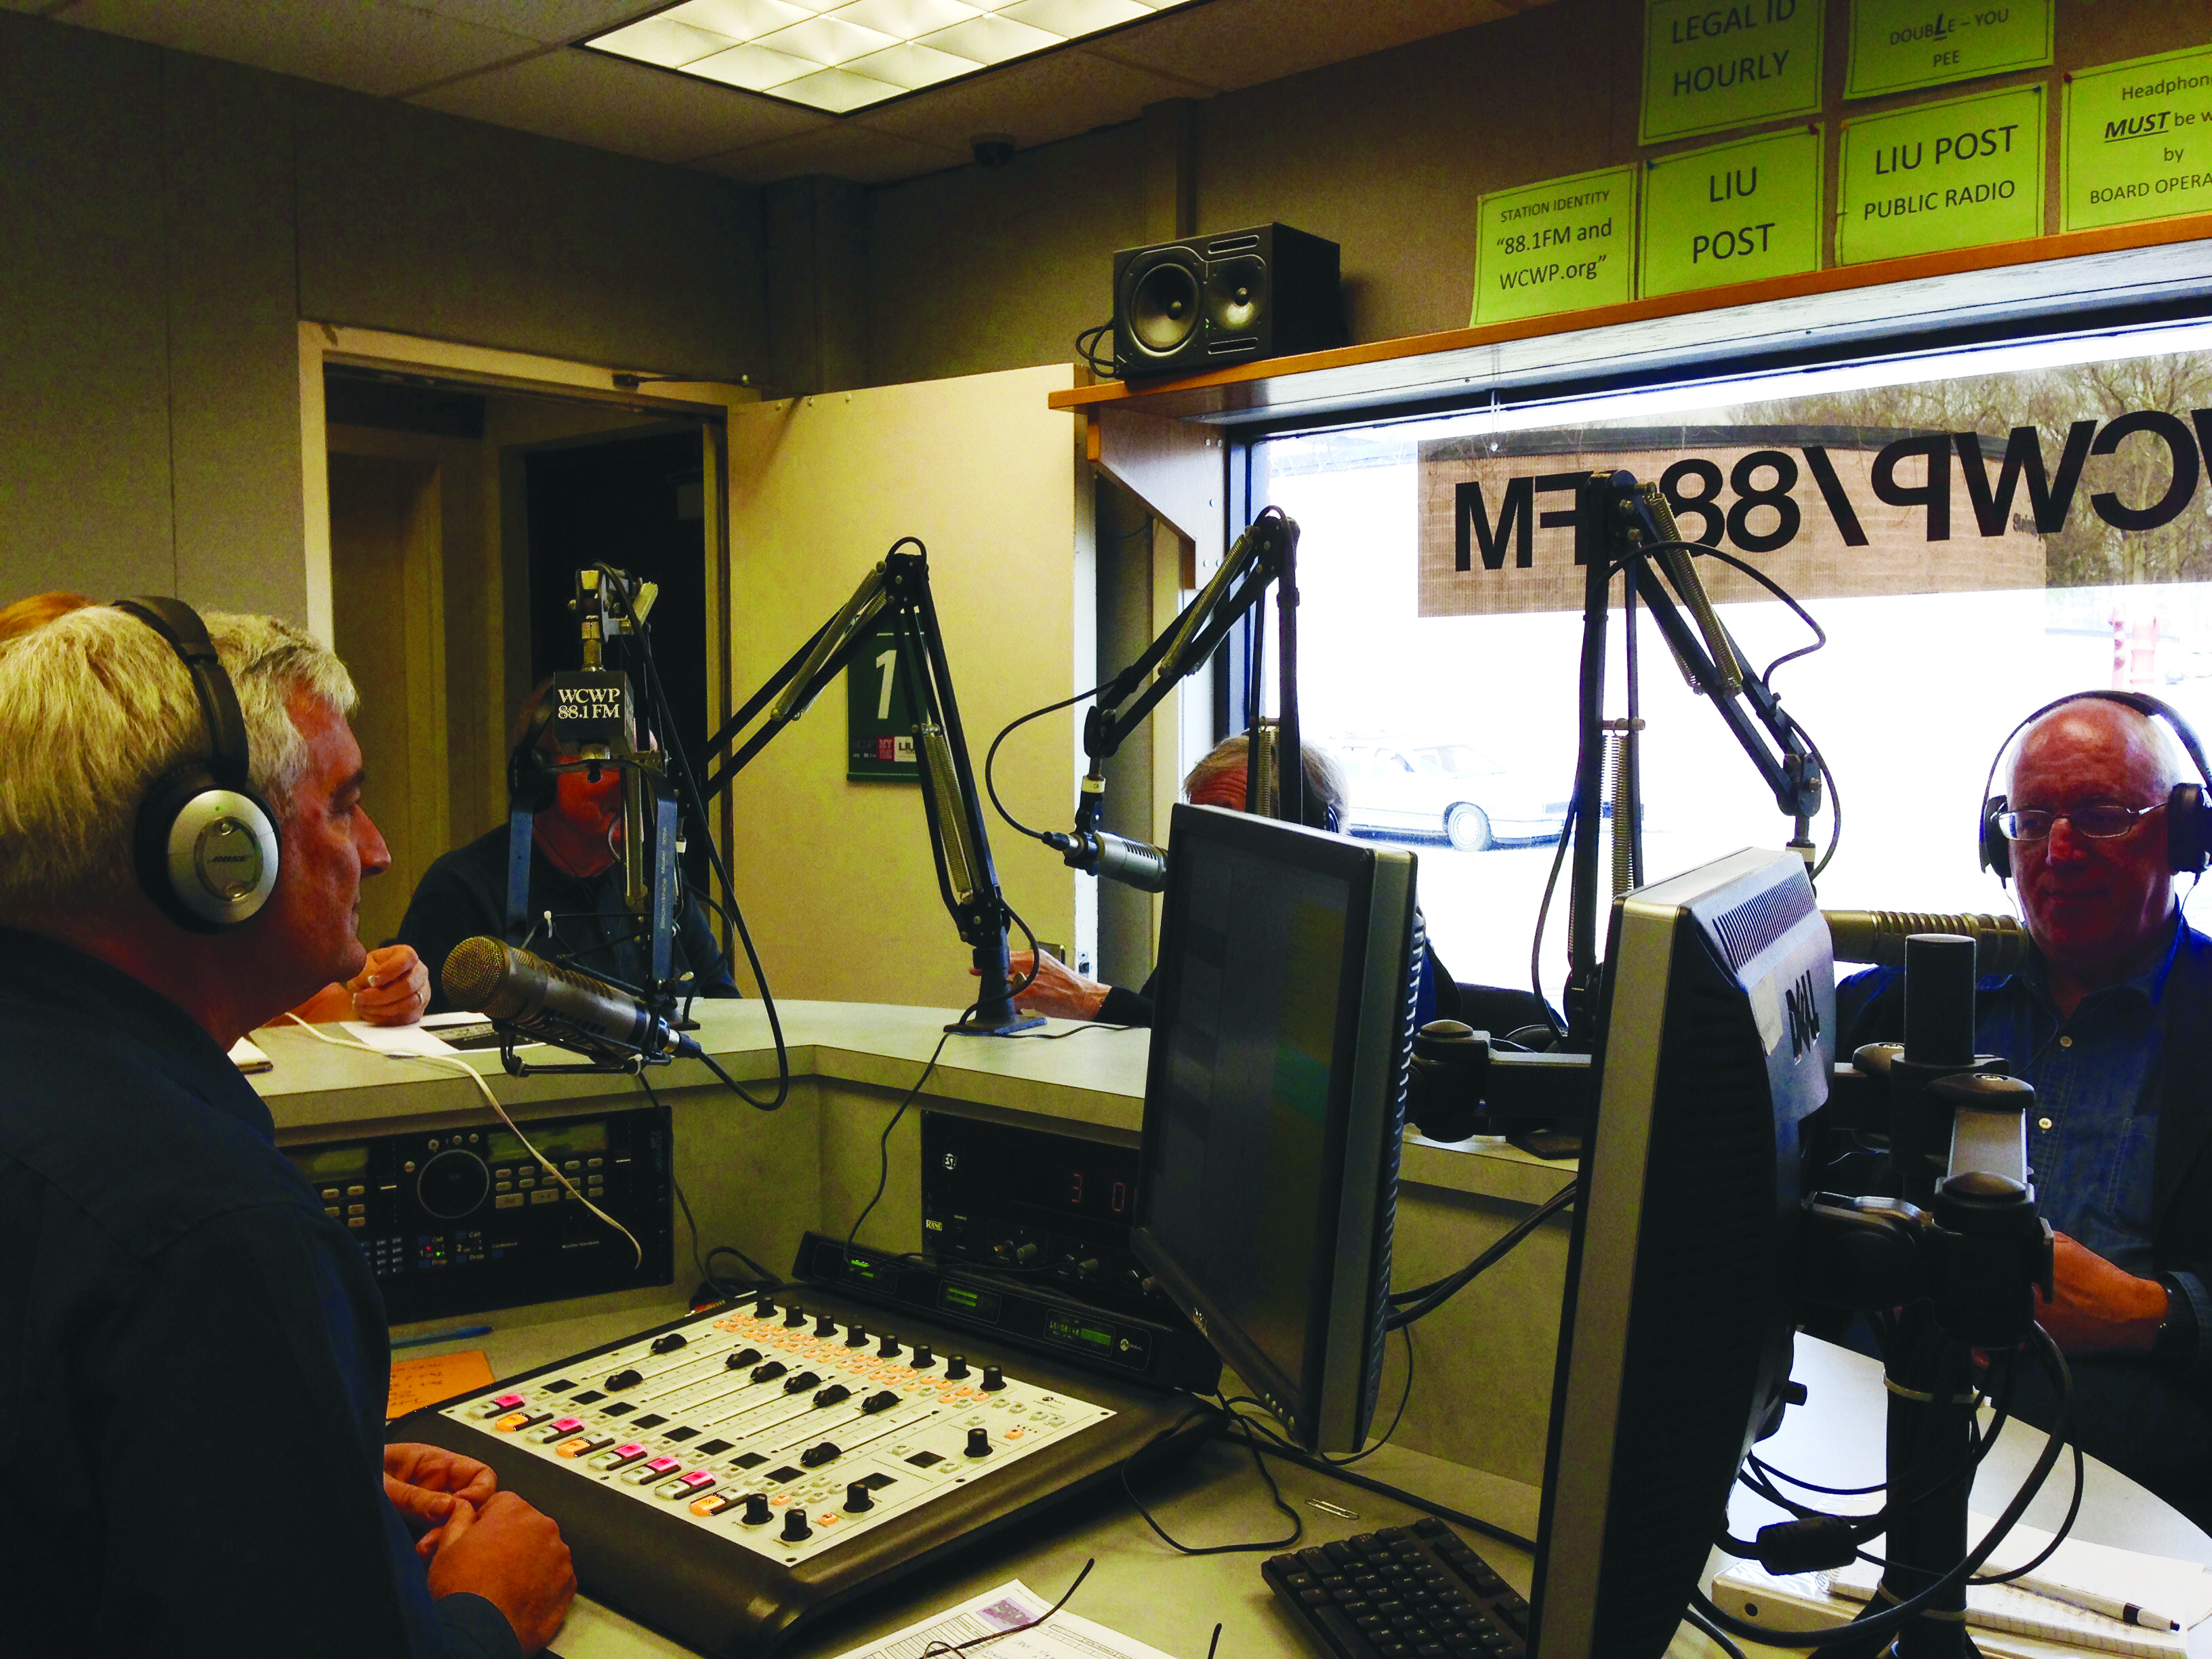 Former members of the campus radio put on a special broadcast for the 50th Anniversary of the FM station. Photo: Alyssa Seidman